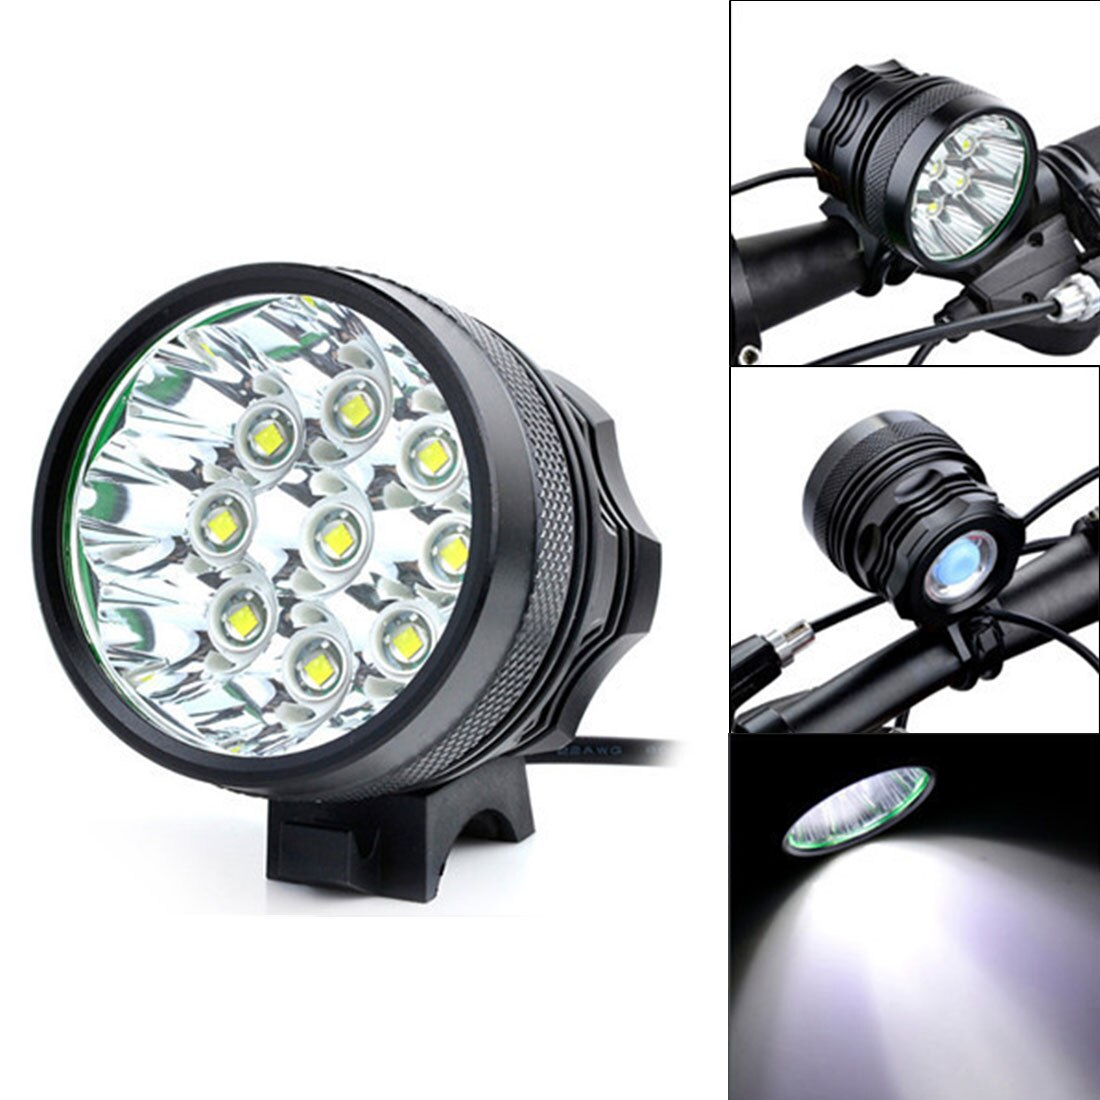 SecurityIng Bicycle Headlights XM-L T6 LED Camping Fishing  Cycling Flashing Light Lamp Waterproof 18650 Battery  Bicycle Lights